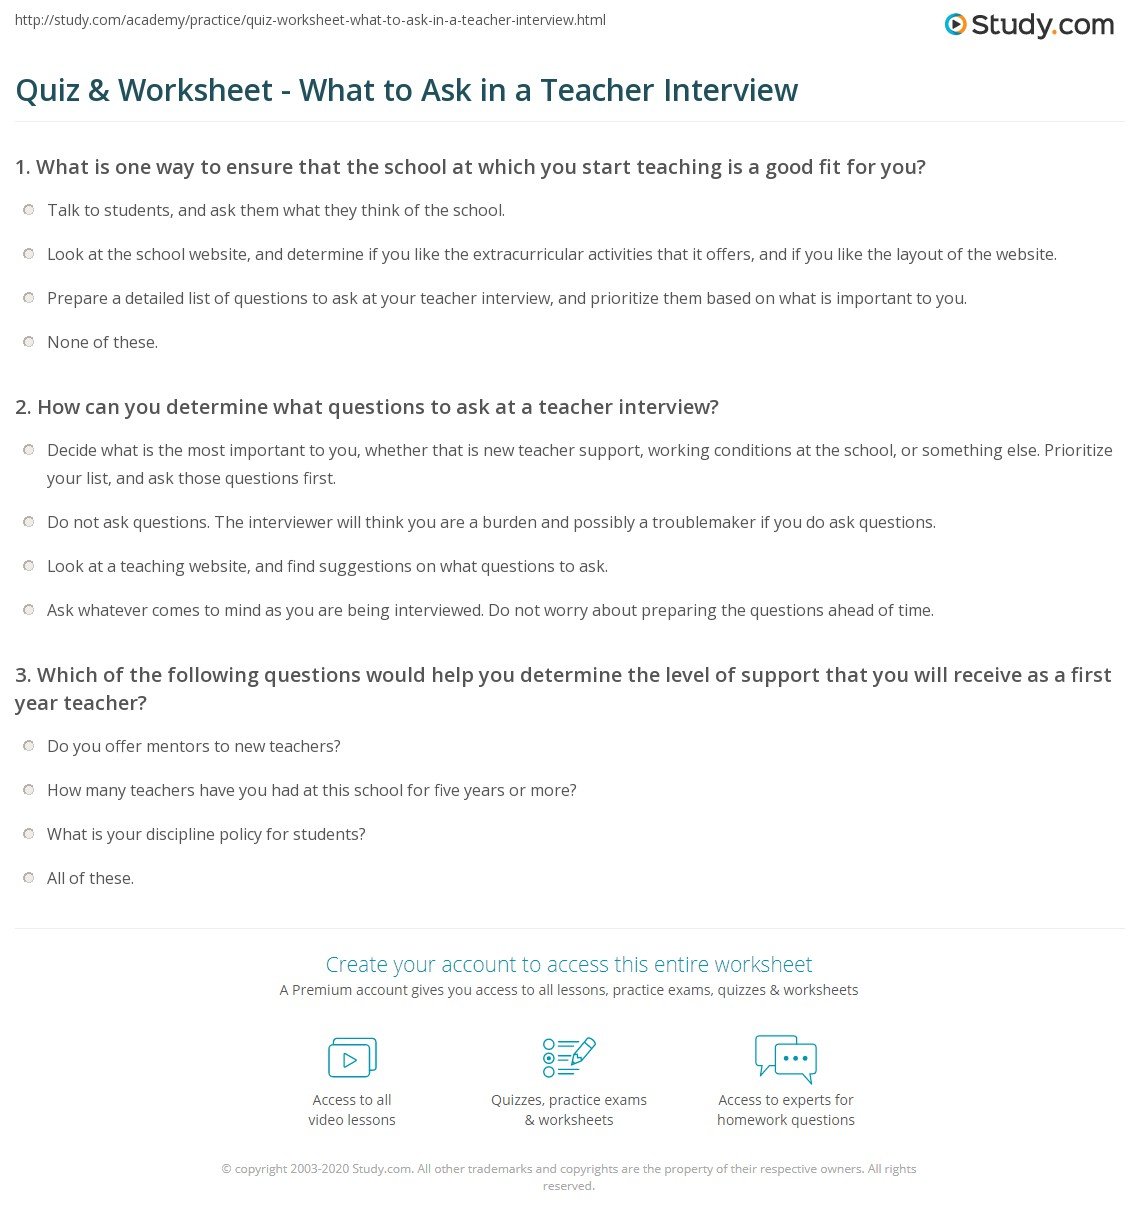 quiz worksheet what to ask in a teacher interview study com how can you determine what questions to ask at a teacher interview